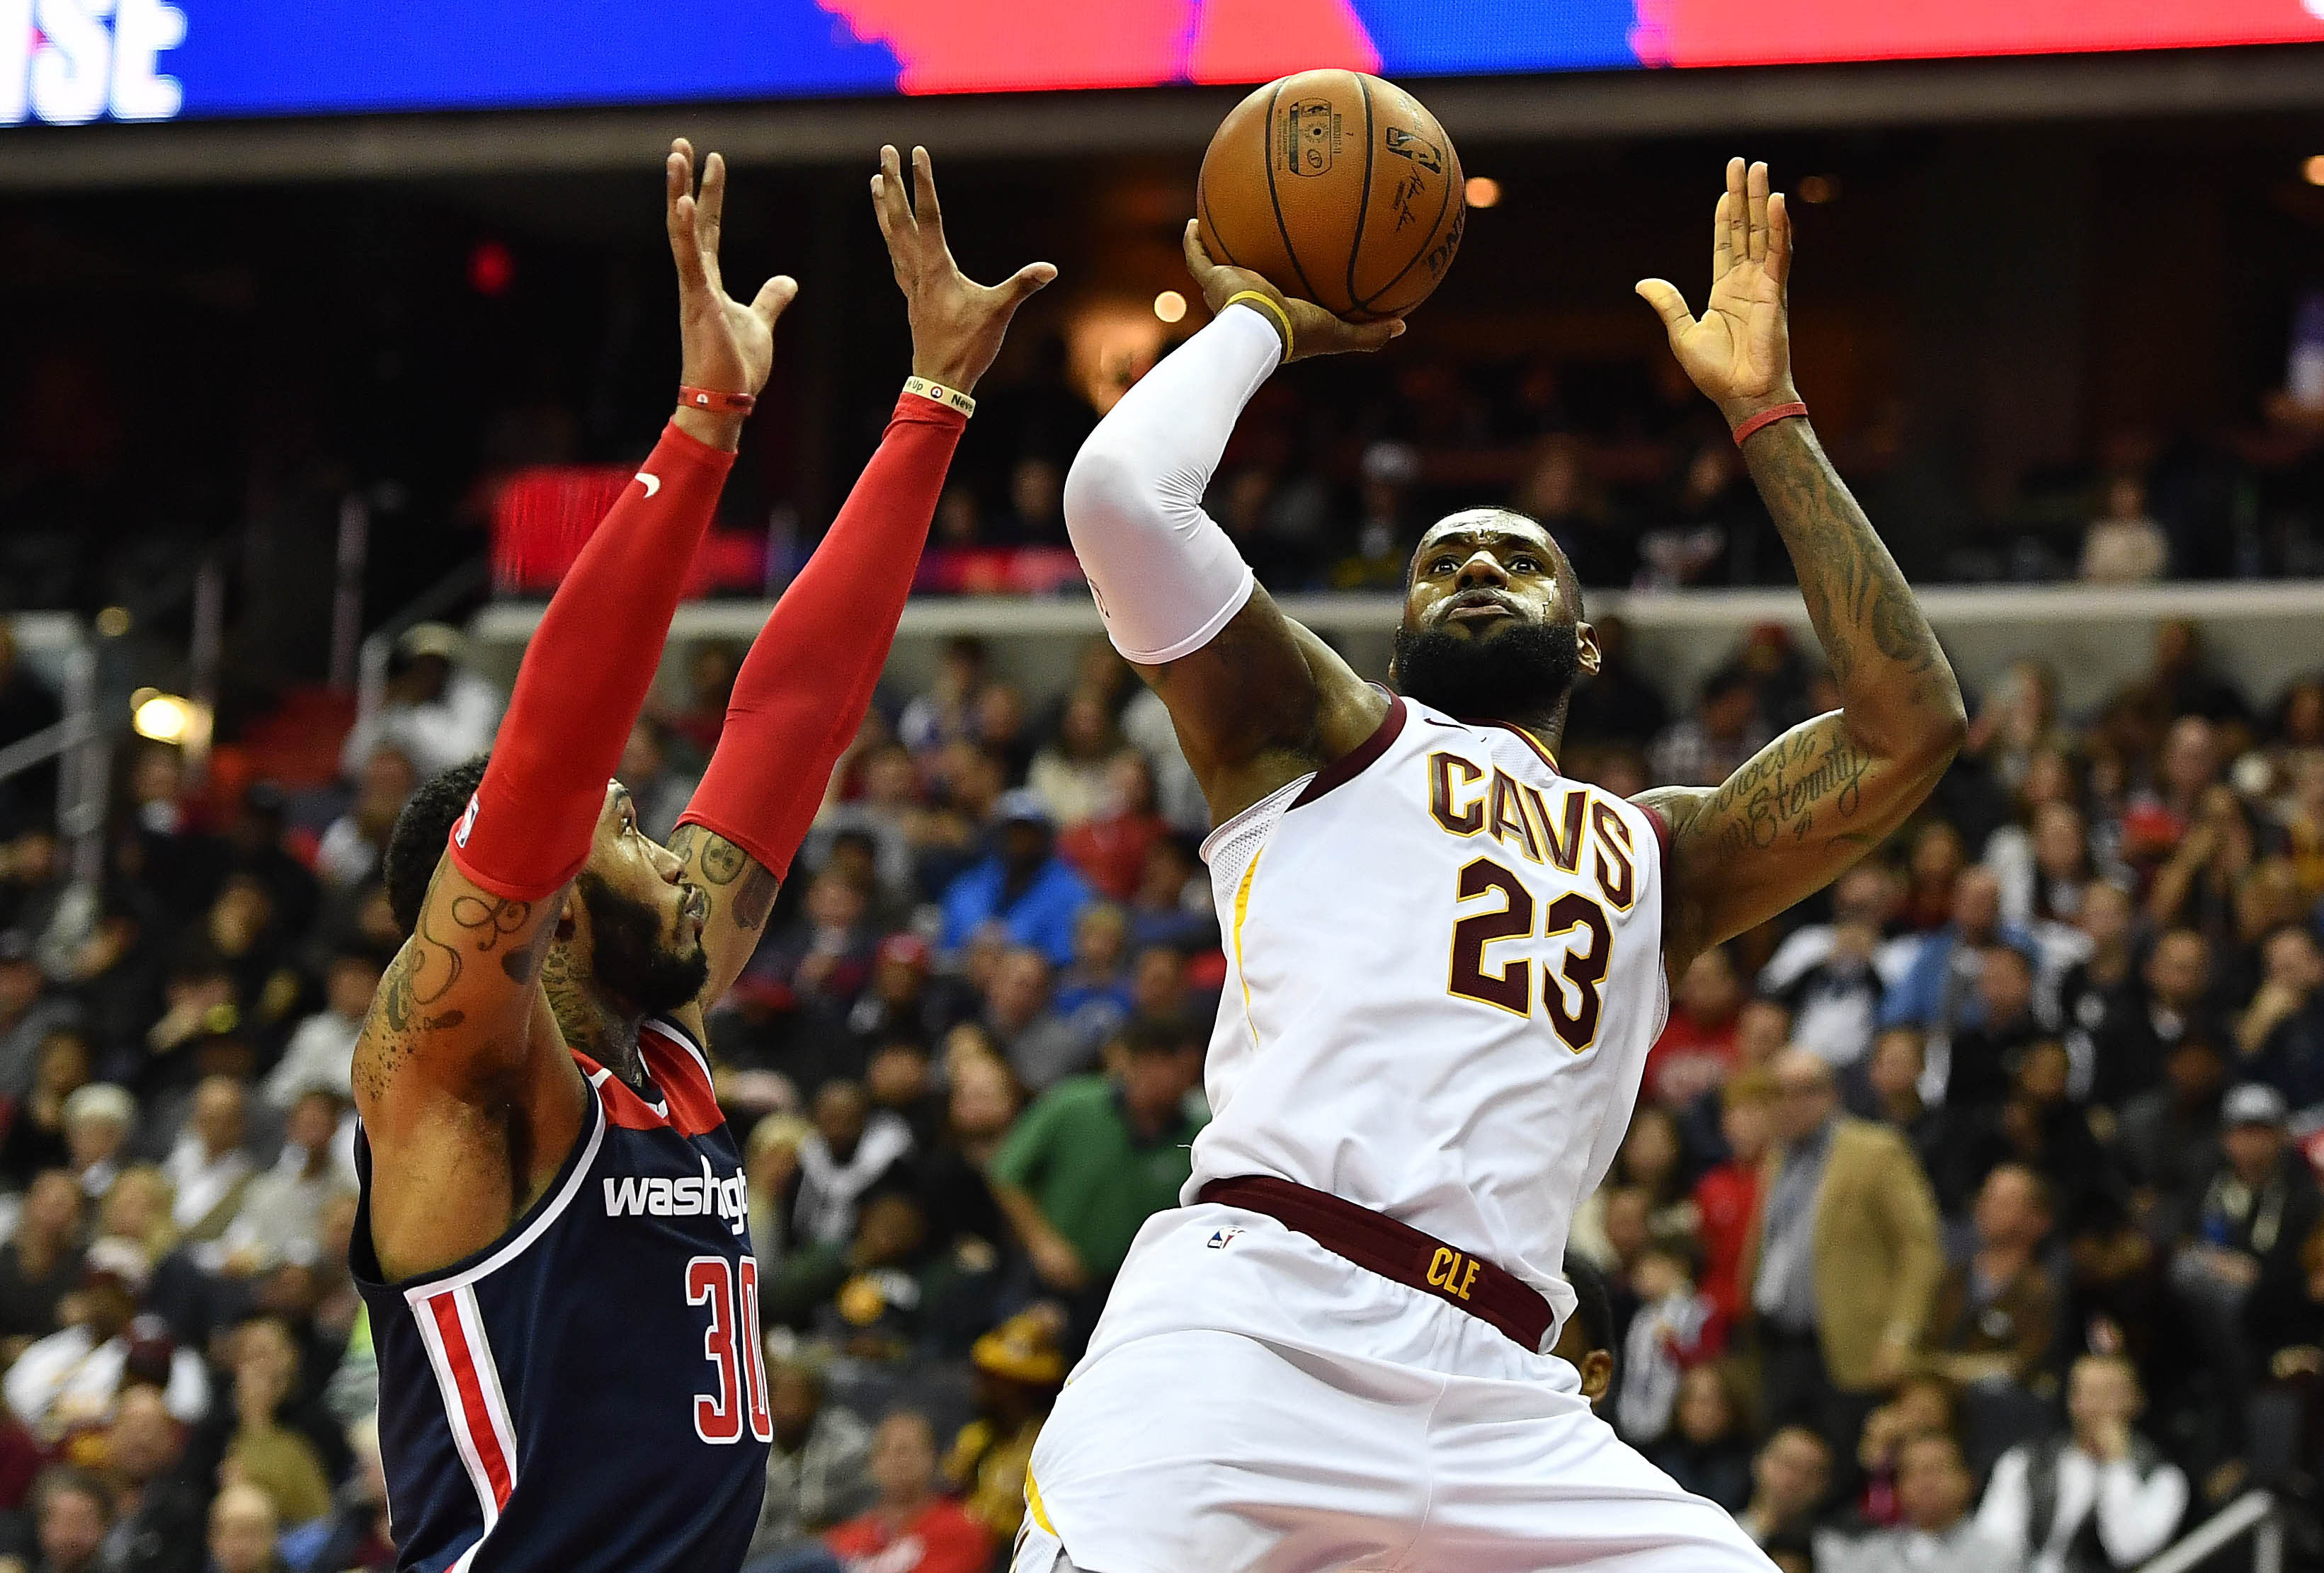 LeBron James says road trip was 'trash'